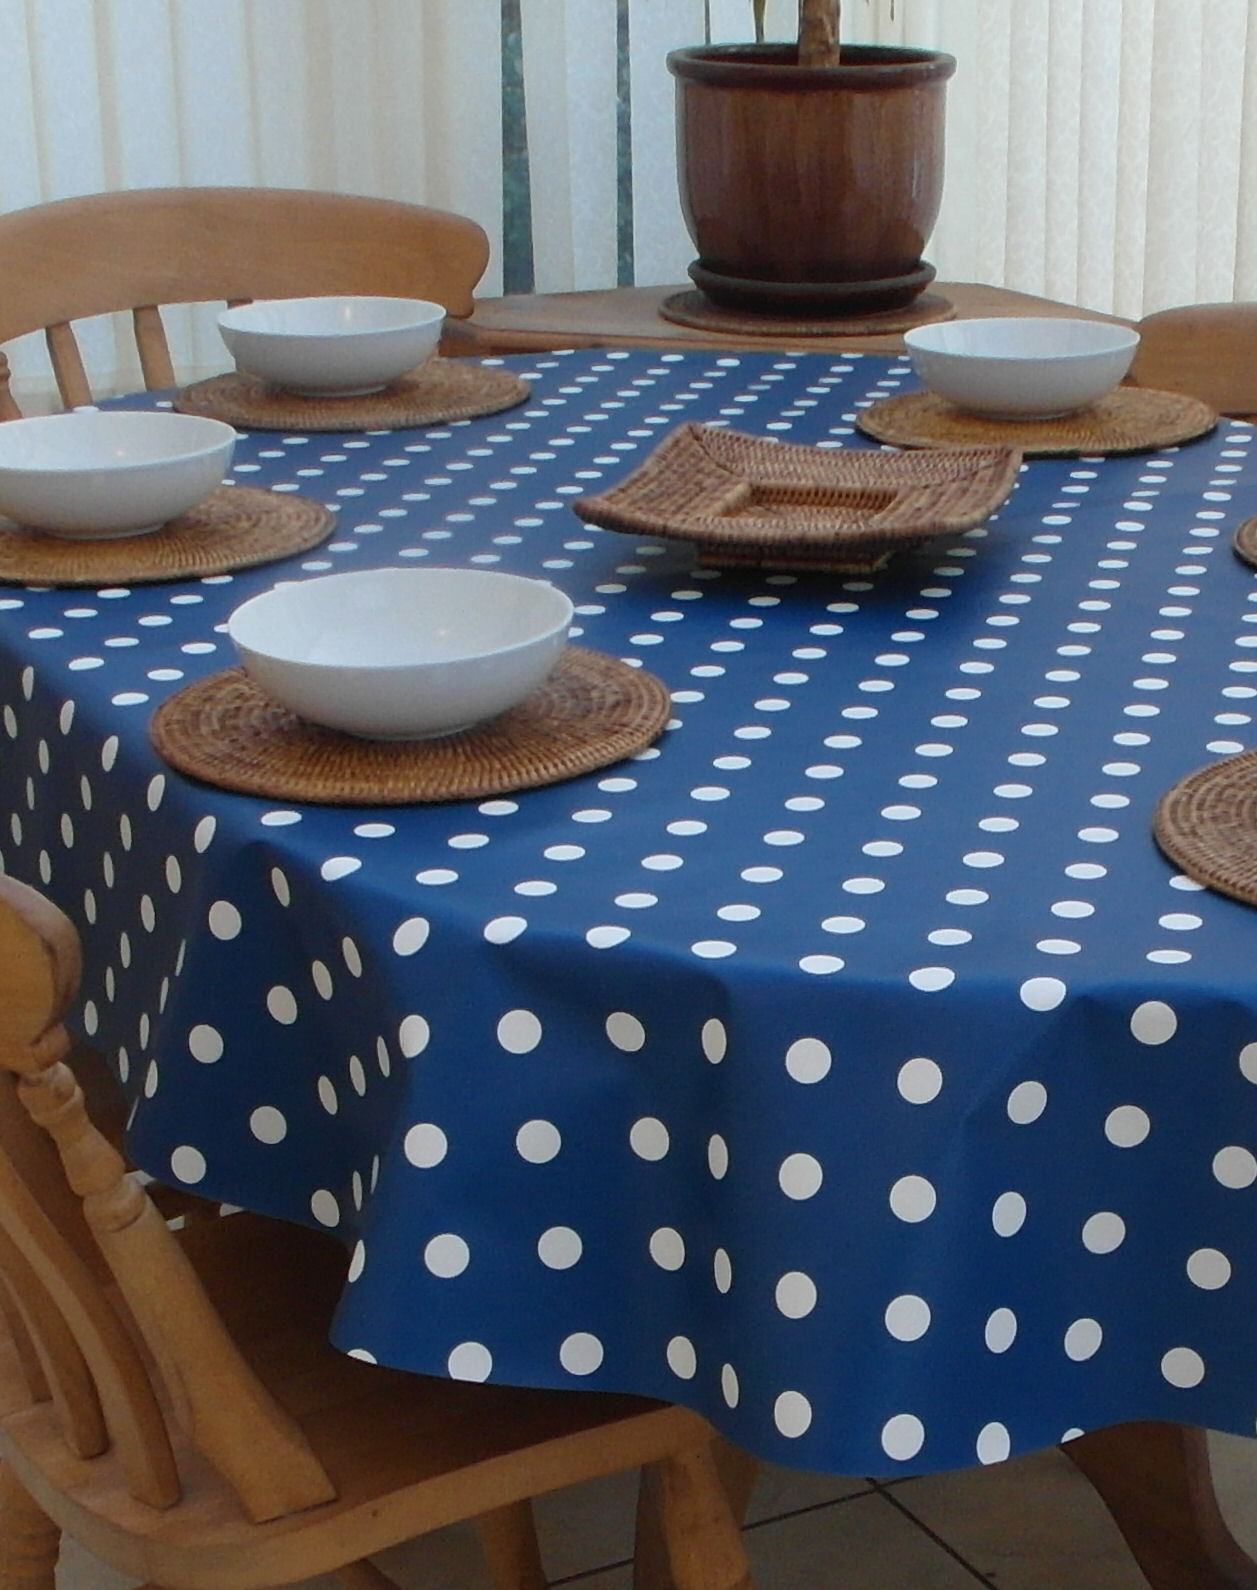 Oval Wipe Clean Tablecloth Blue Polka Dot The